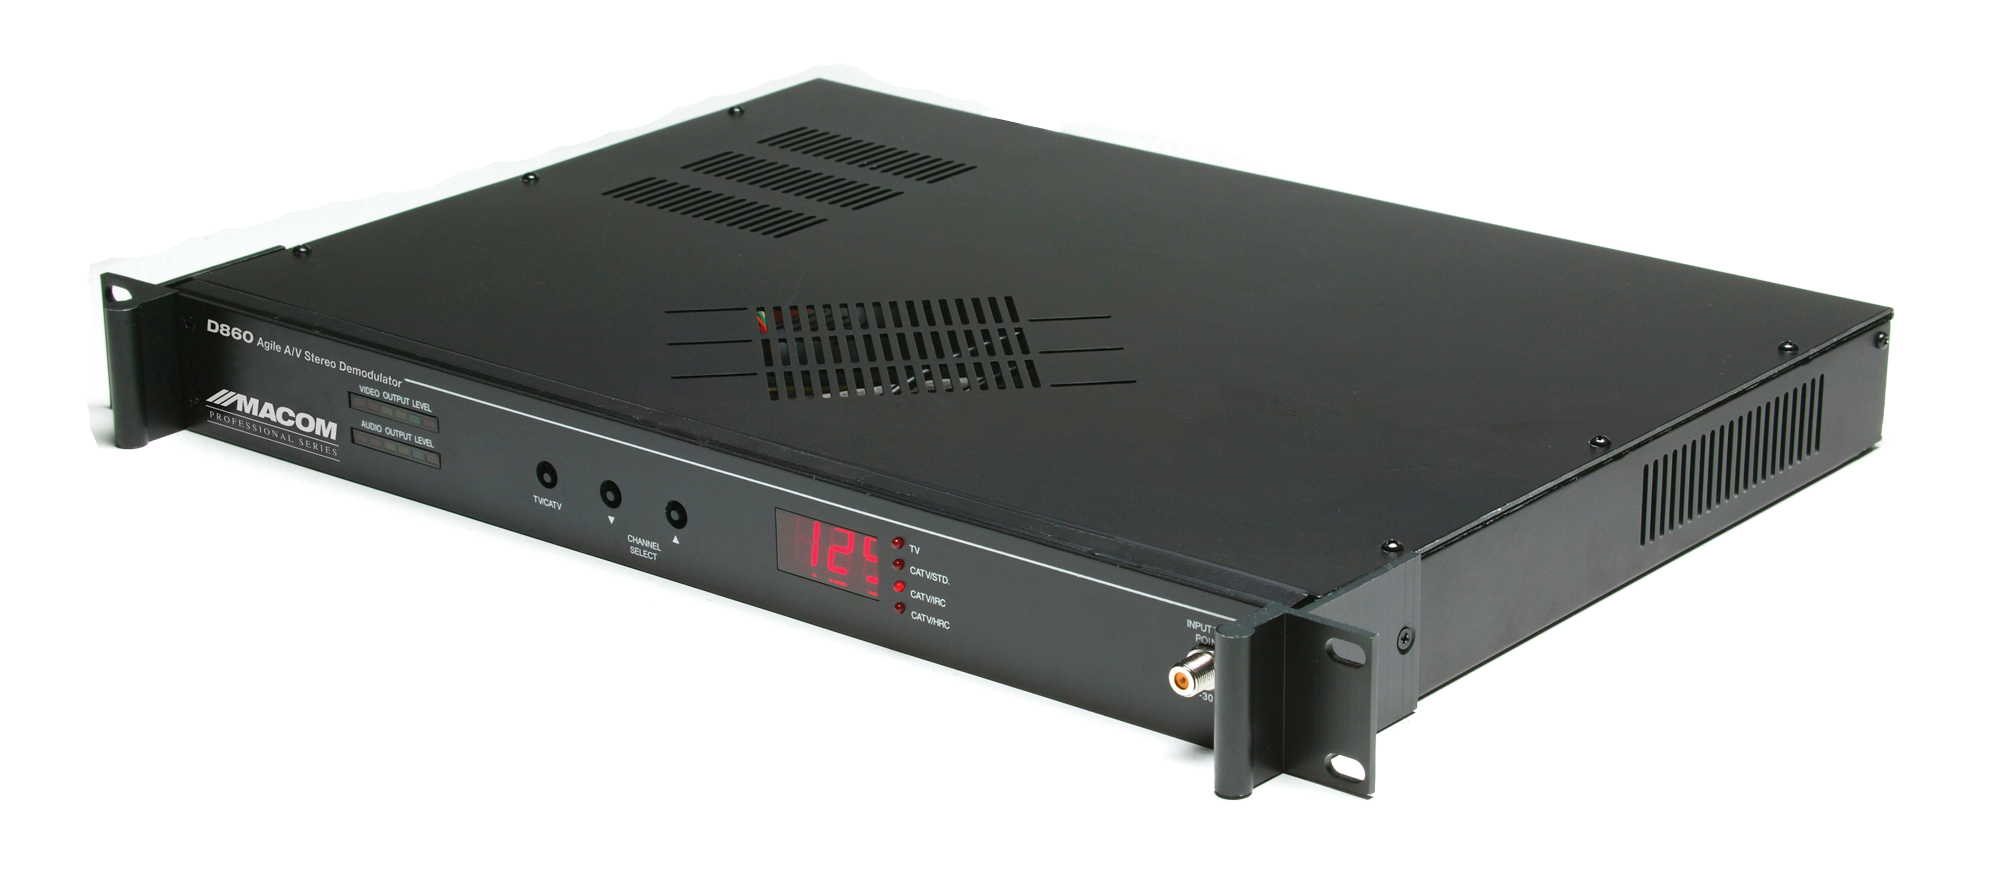 D860: Agile A/V Stereo Demodulator with Sub-Band